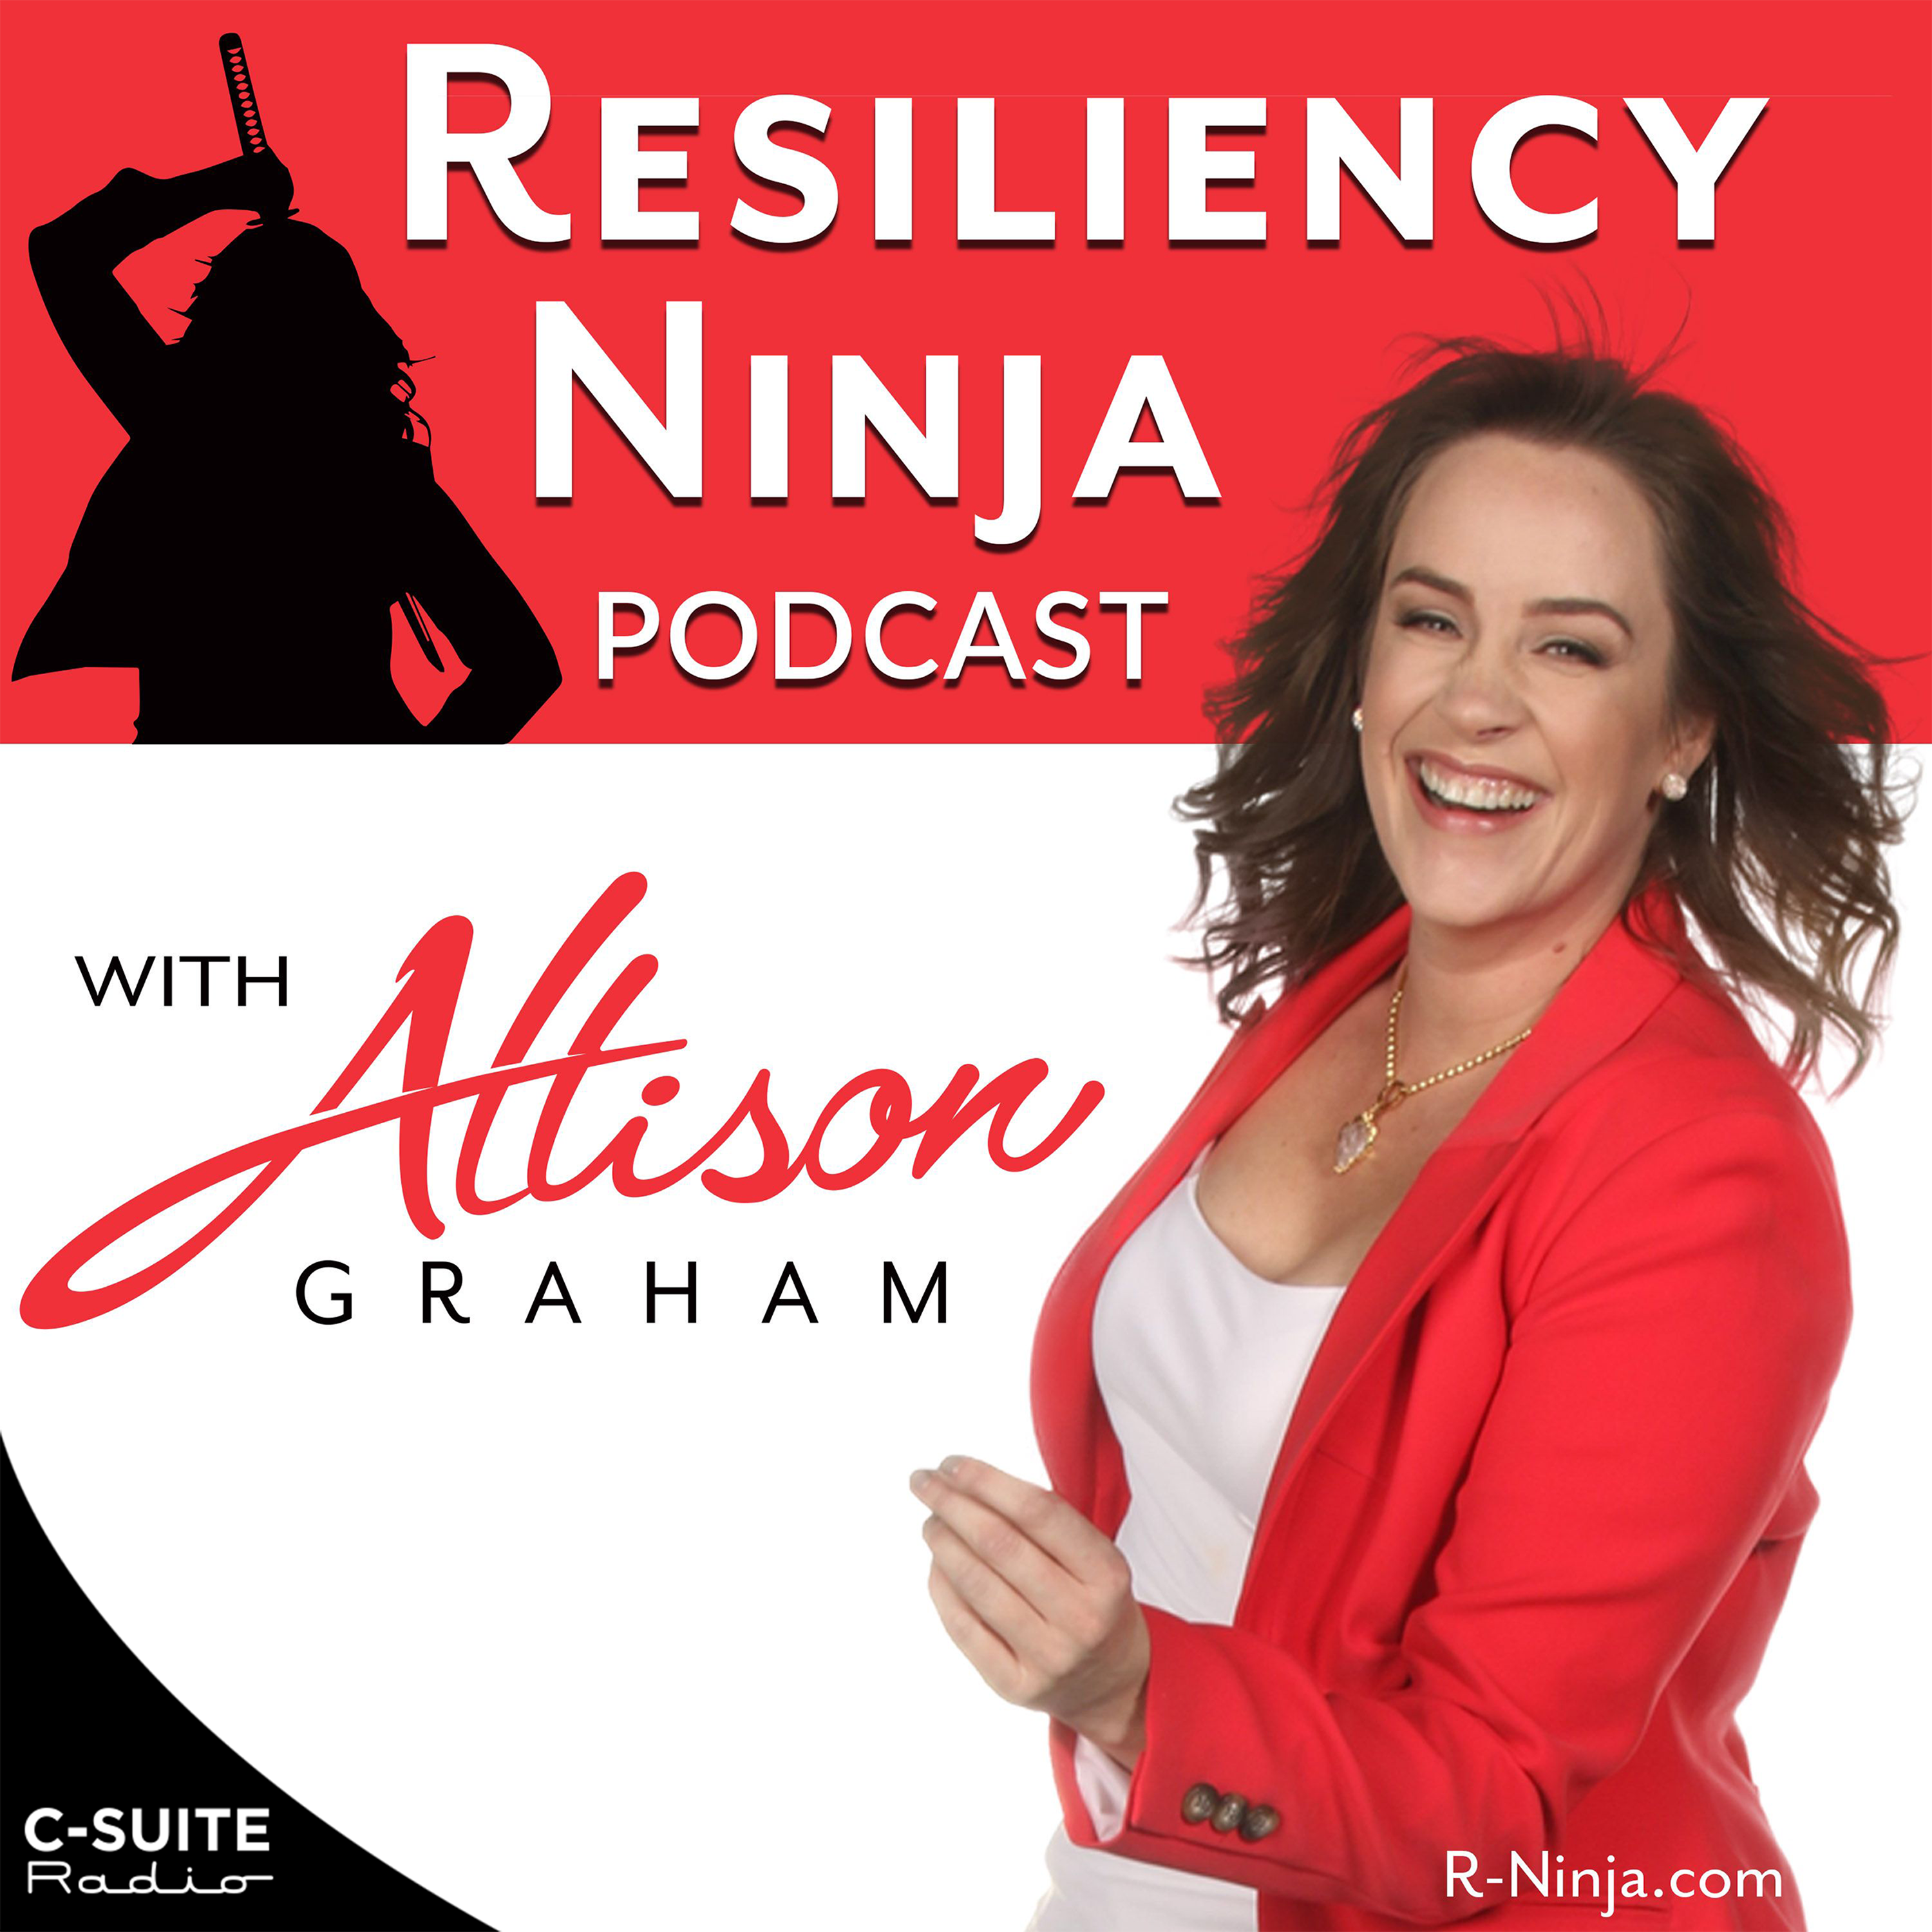 Resiliency Ninja with Allison Graham